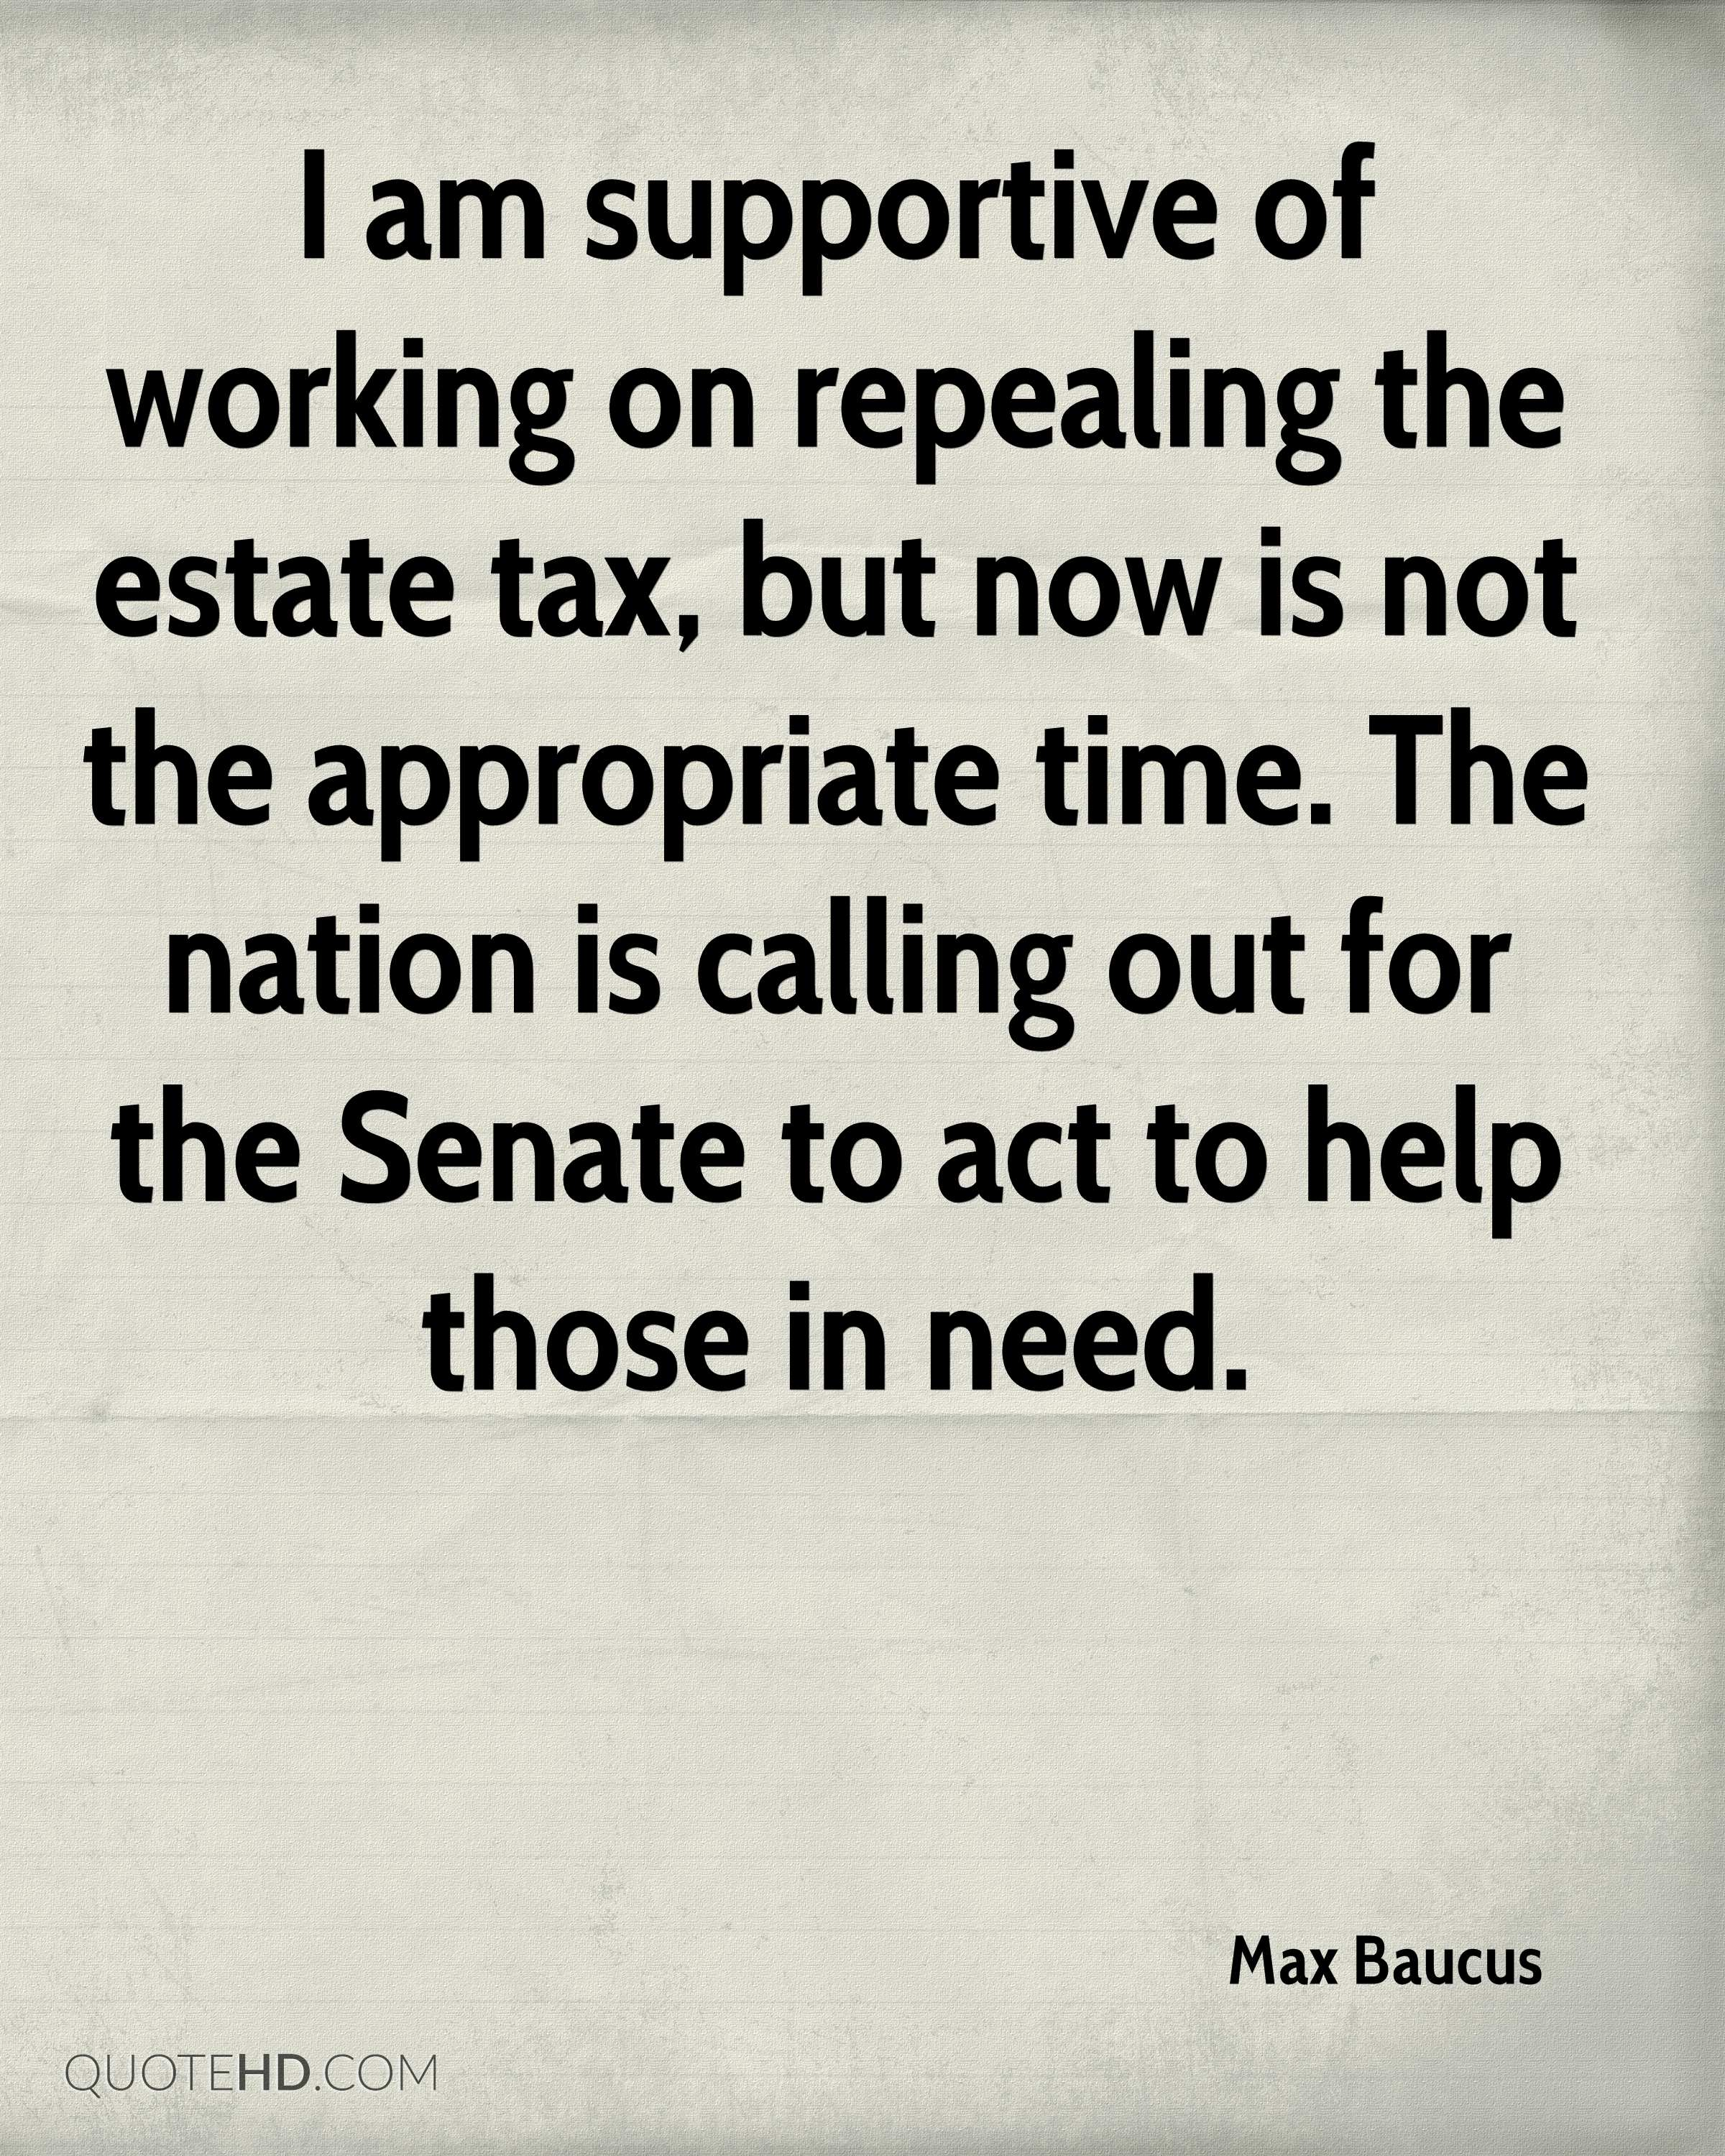 I am supportive of working on repealing the estate tax, but now is not the appropriate time. The nation is calling out for the Senate to act to help those in need.